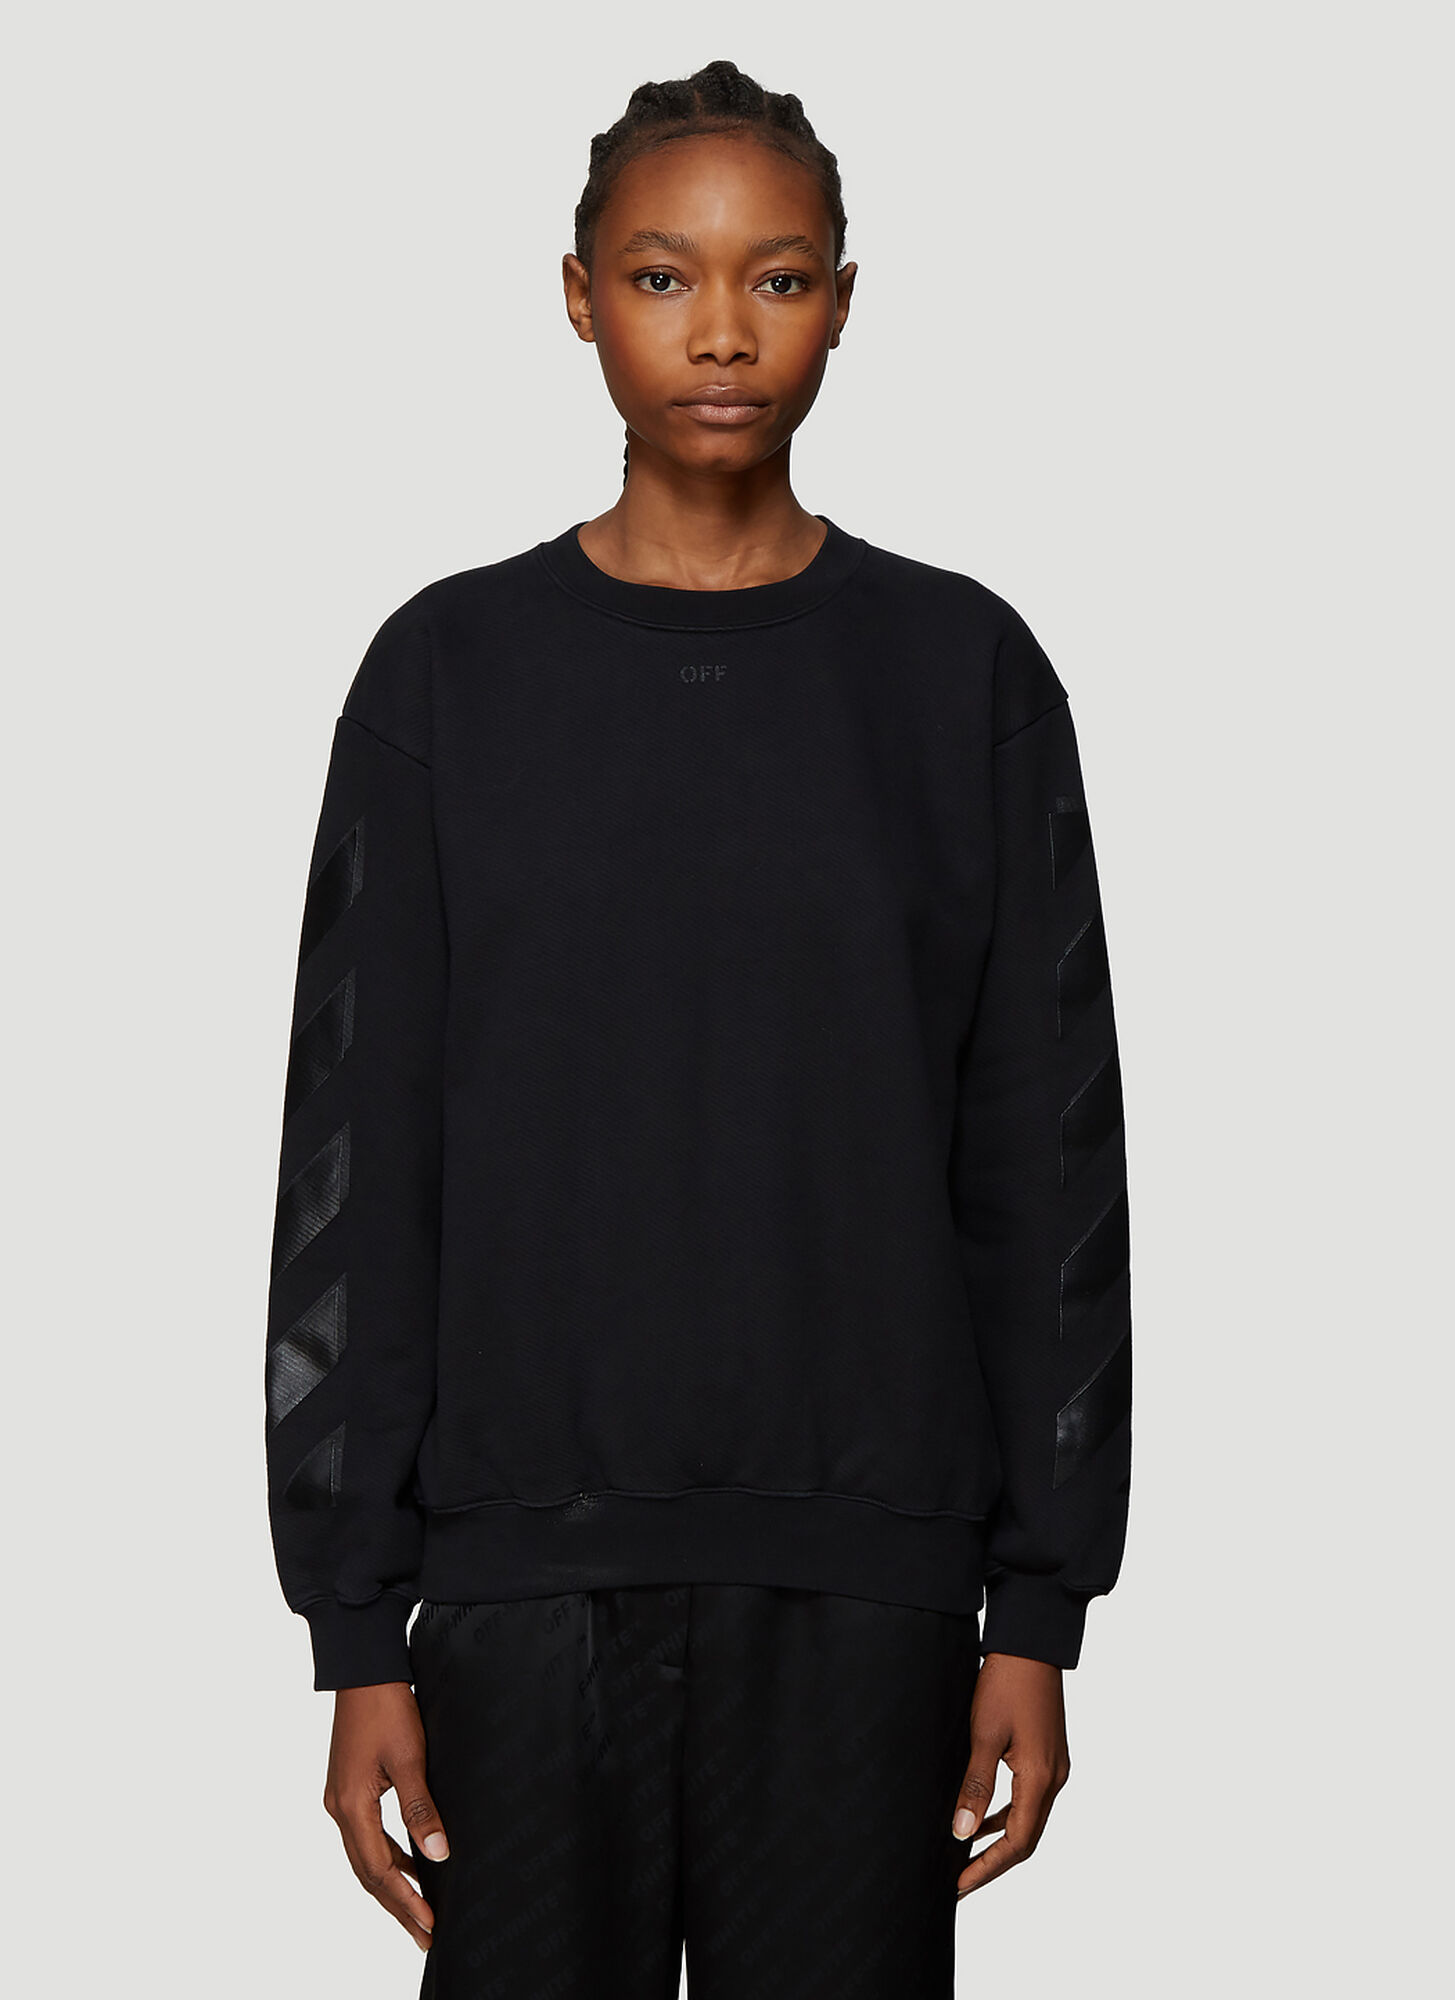 Off-White Diagonal Sweatshirt in Black